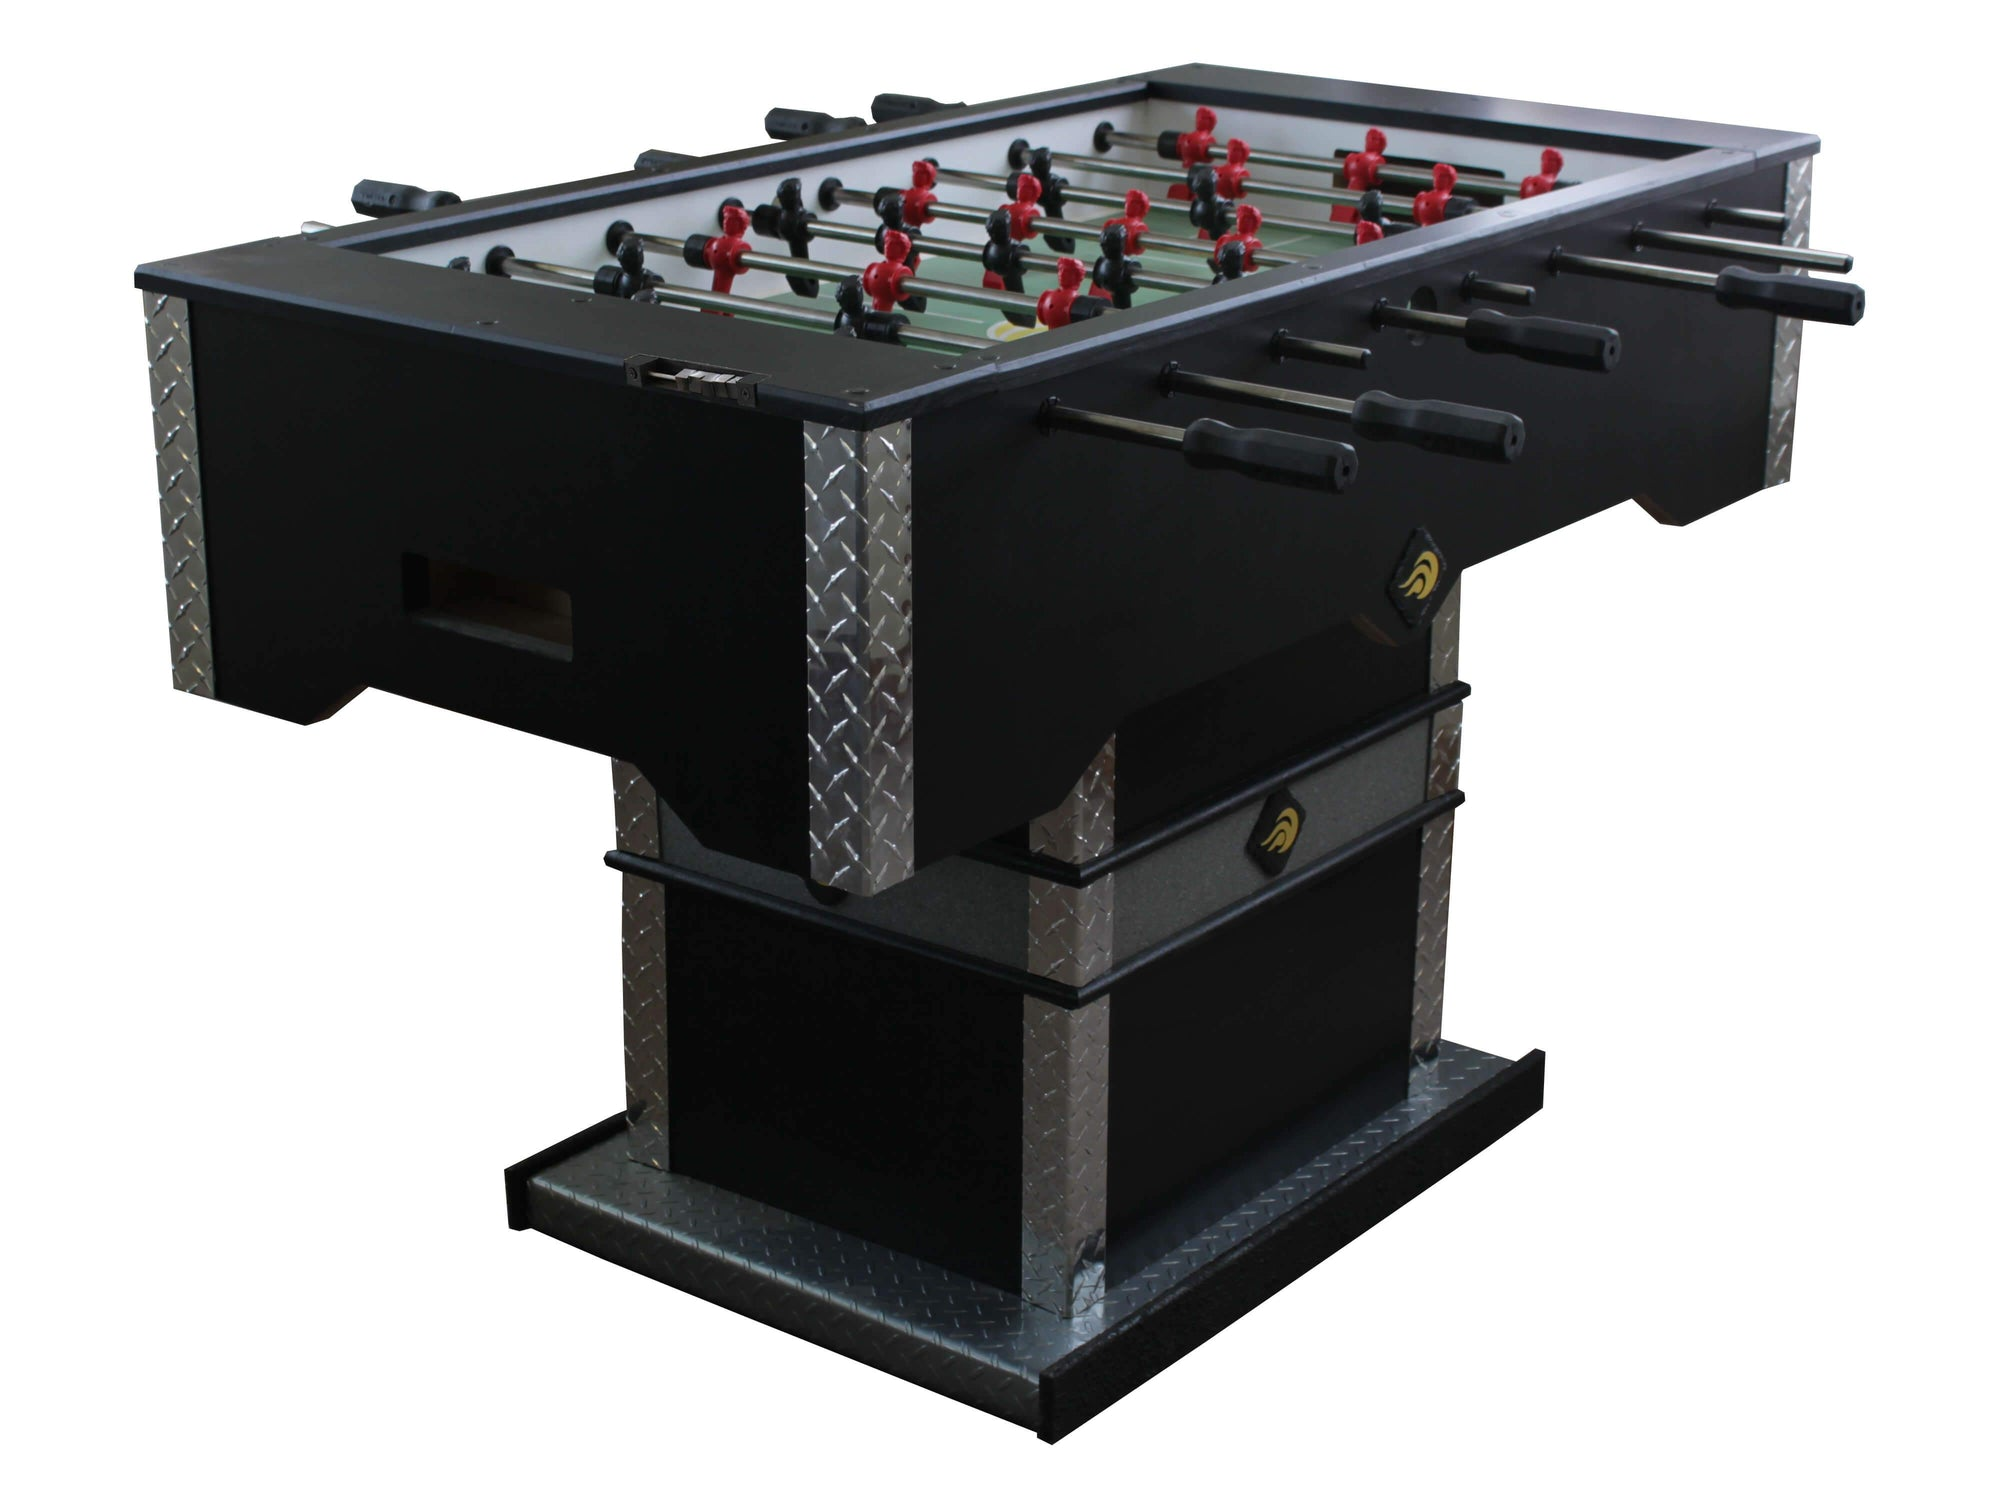 "Performance Games Sure Shot RS Pedestal Base Foosball Table 56"" - Gaming Blaze"